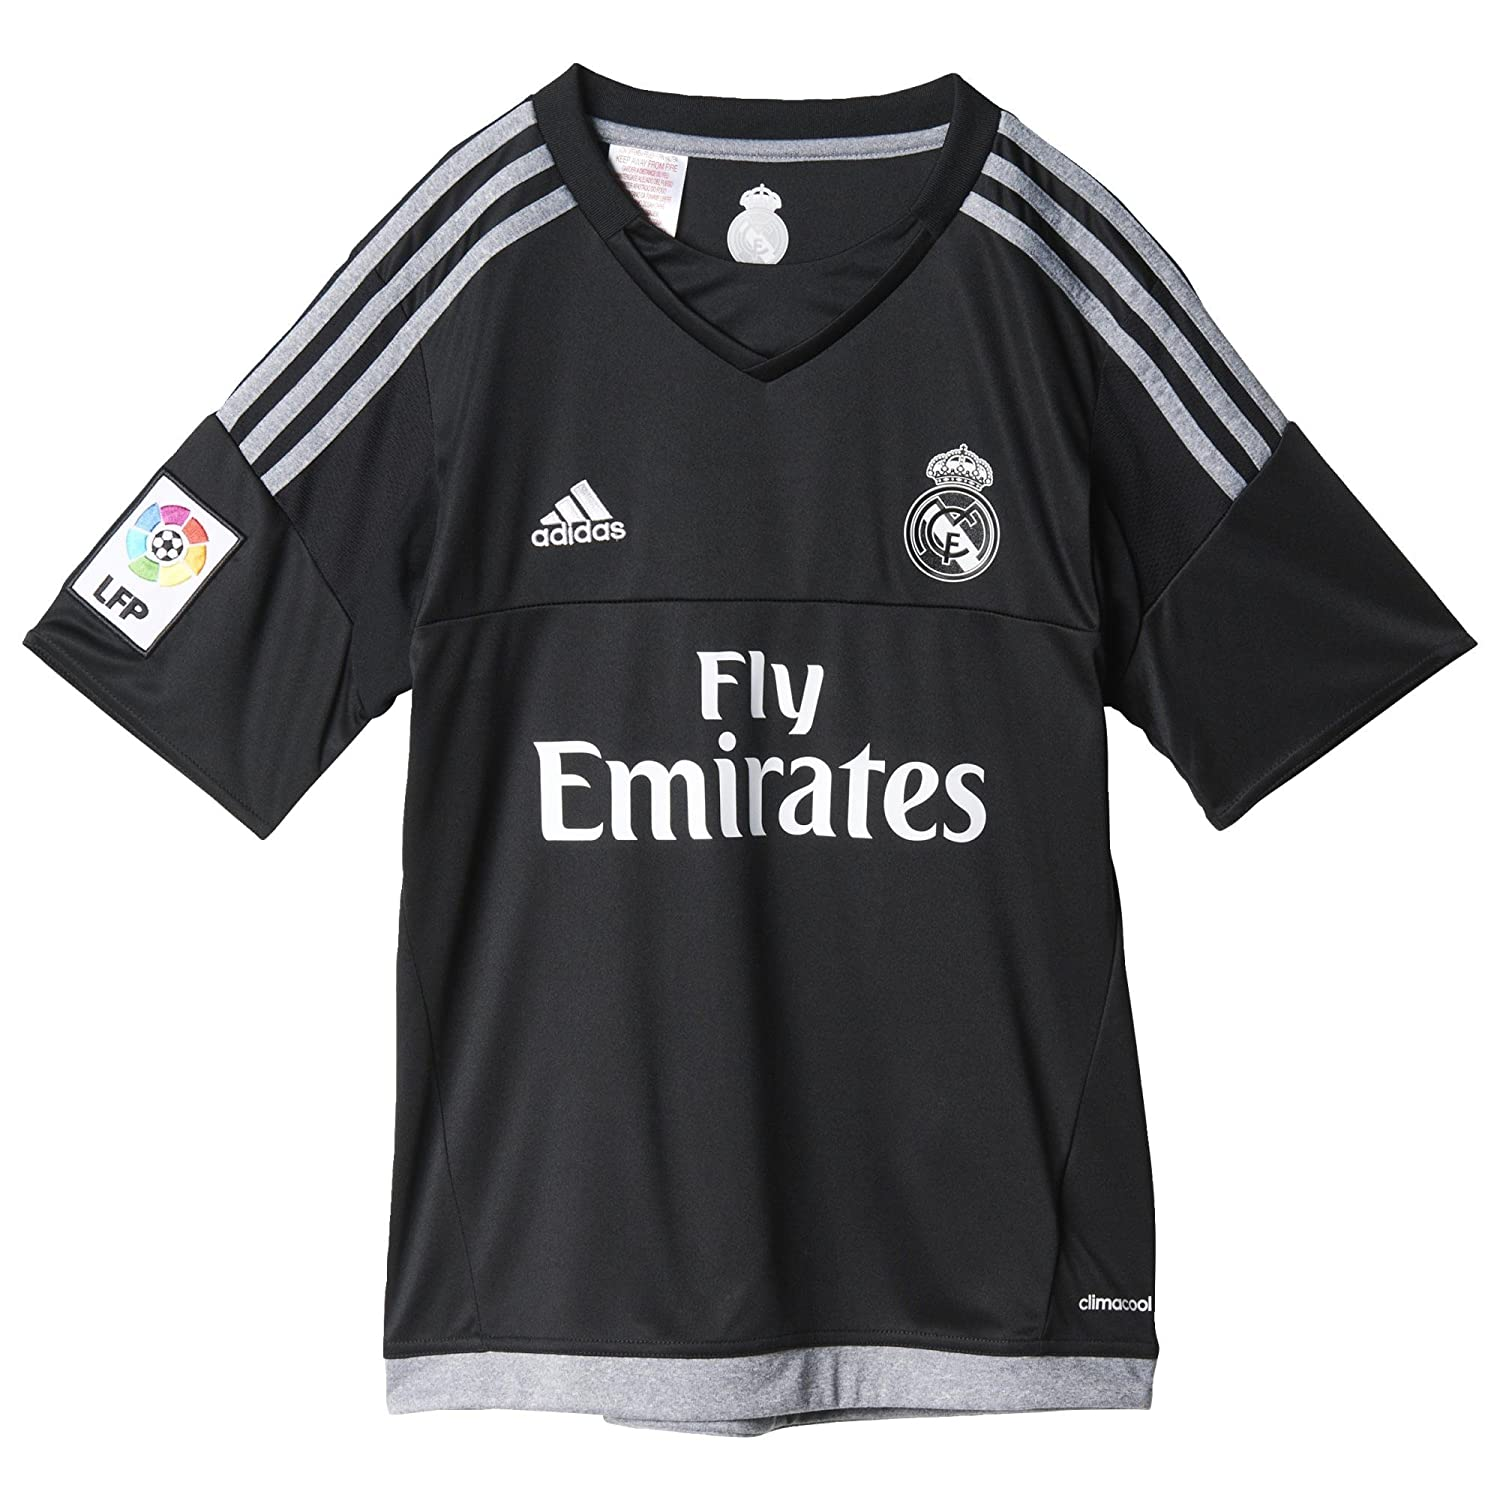 adidas maillot de gardien de but pour enfant aux couleurs du real madrid ebay. Black Bedroom Furniture Sets. Home Design Ideas